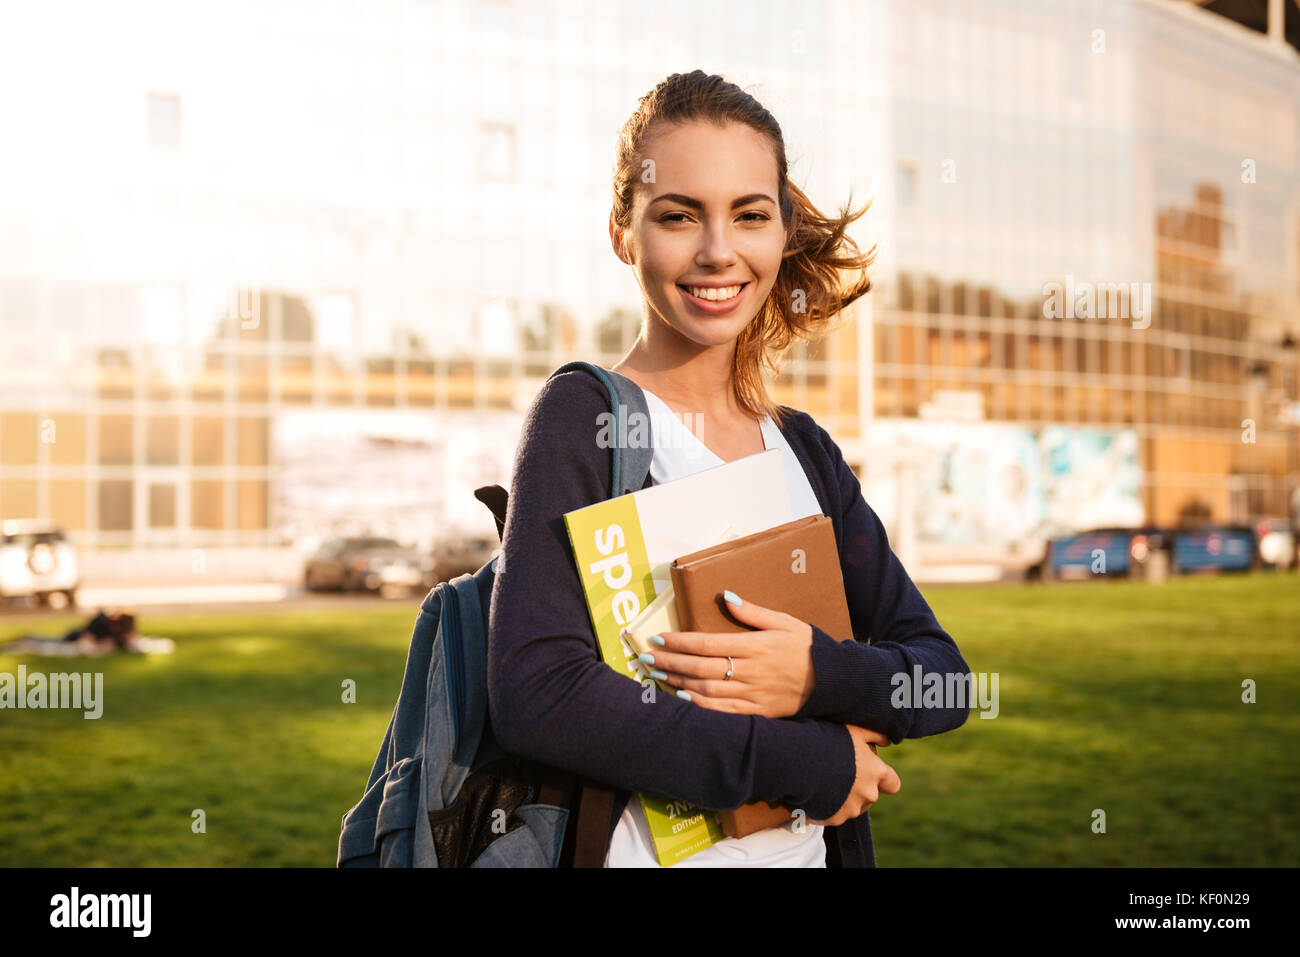 2a4e7d7bab9 Portrait of a joyful brown-haired student girl standing with backpack and  books and looking at camera outdoors